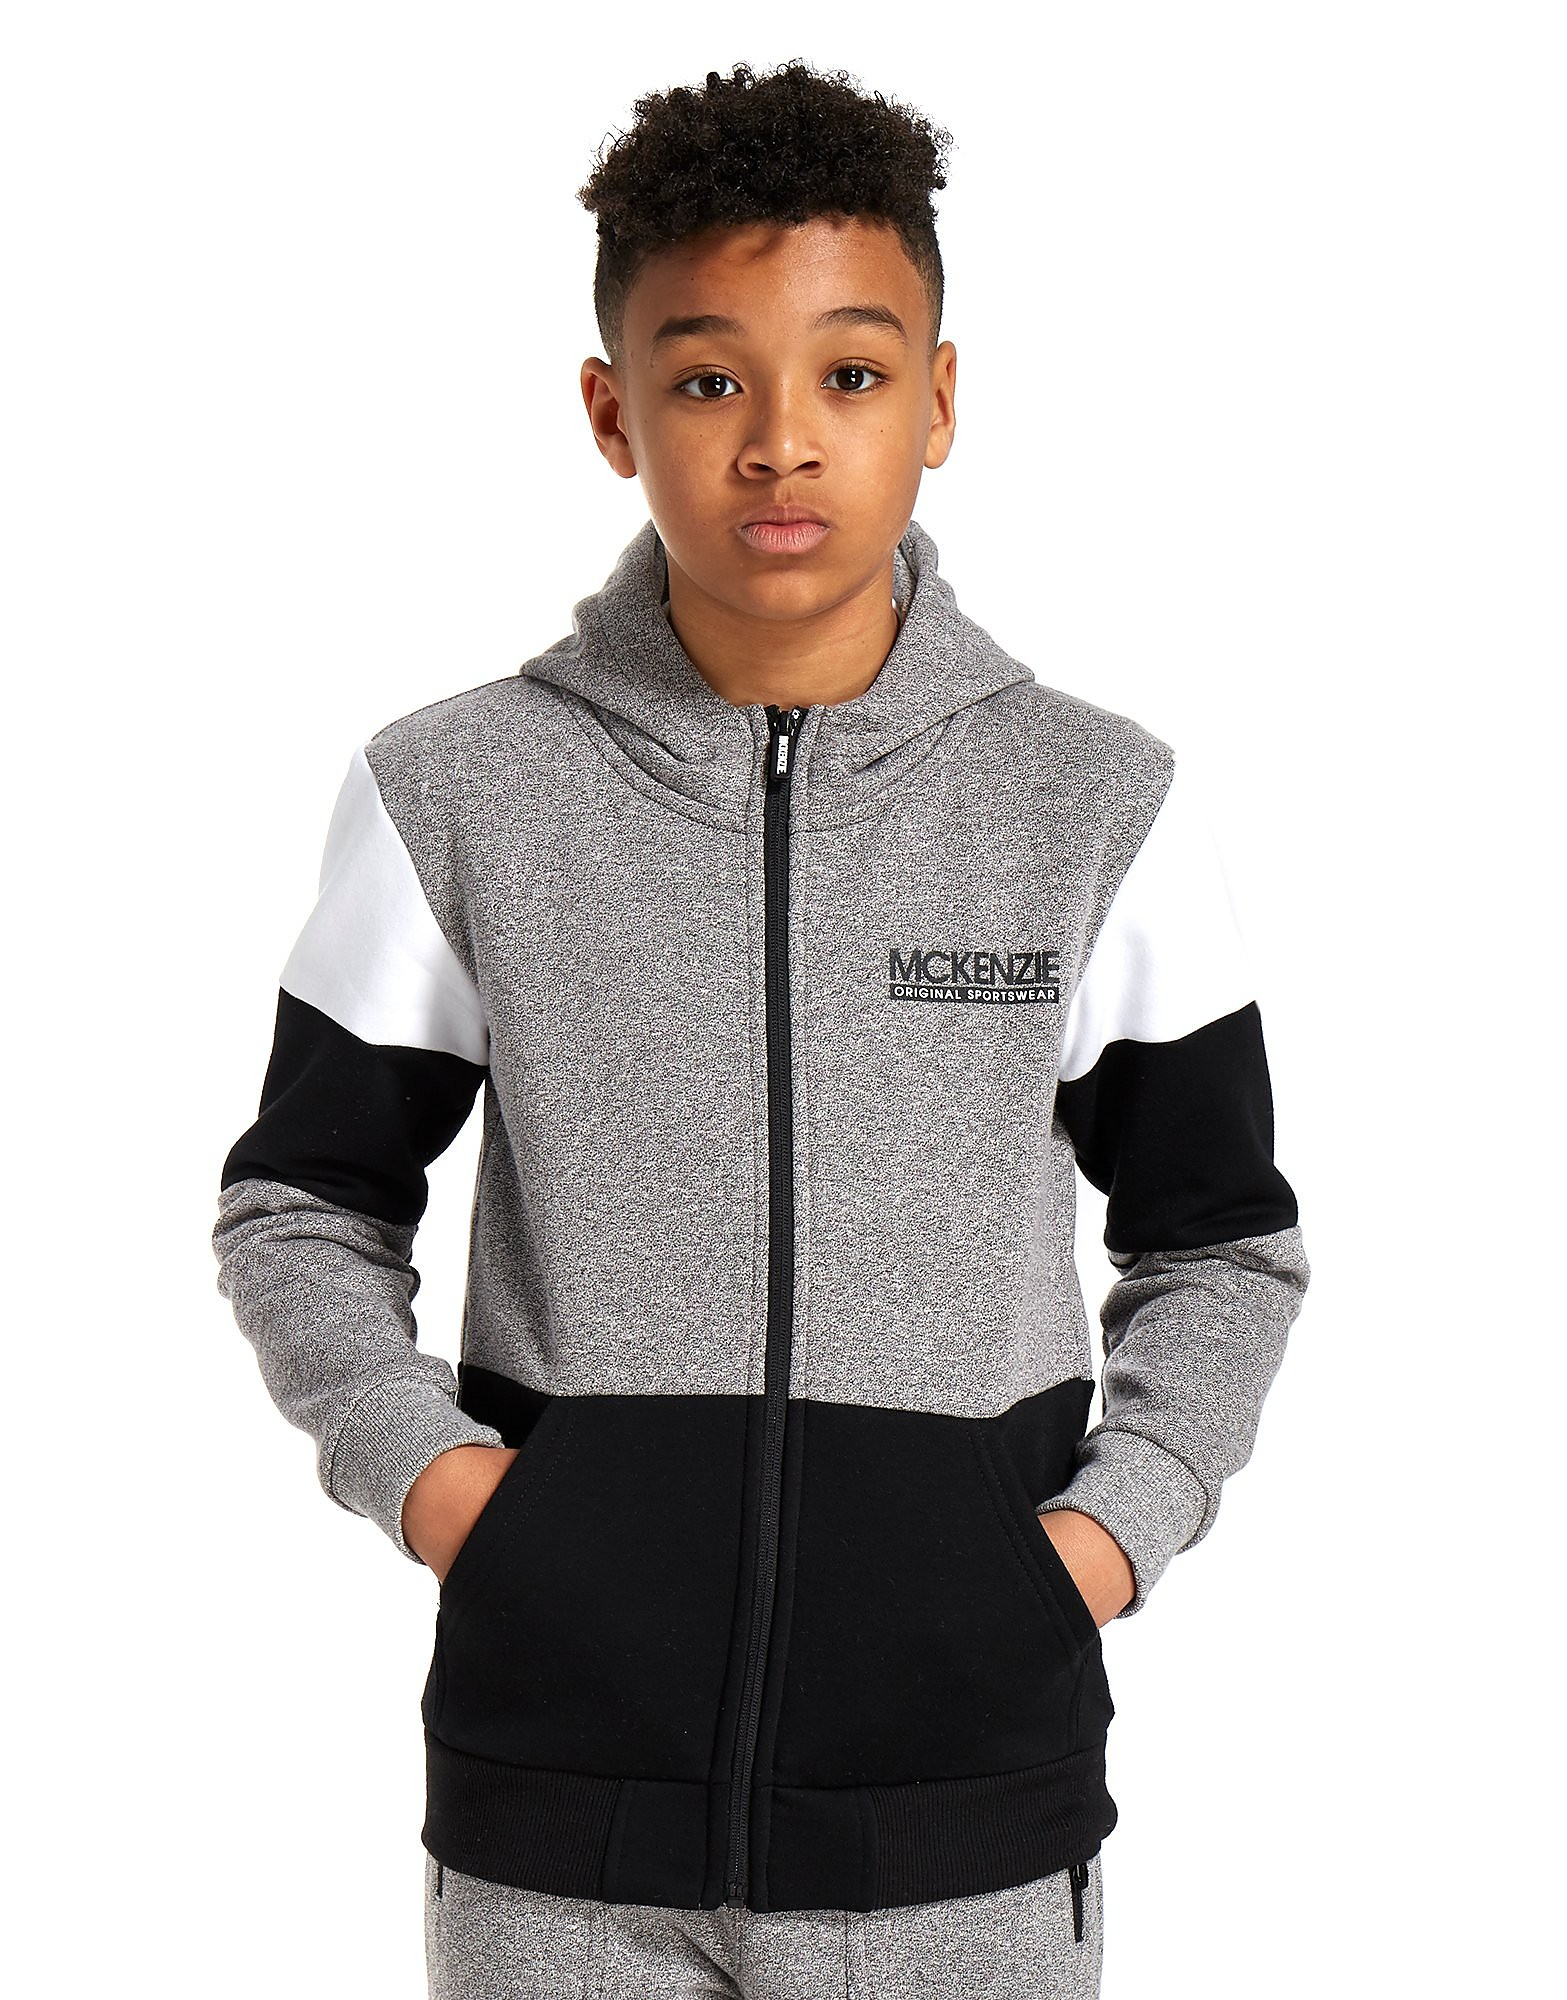 McKenzie Number Full Zip Hoody Junior